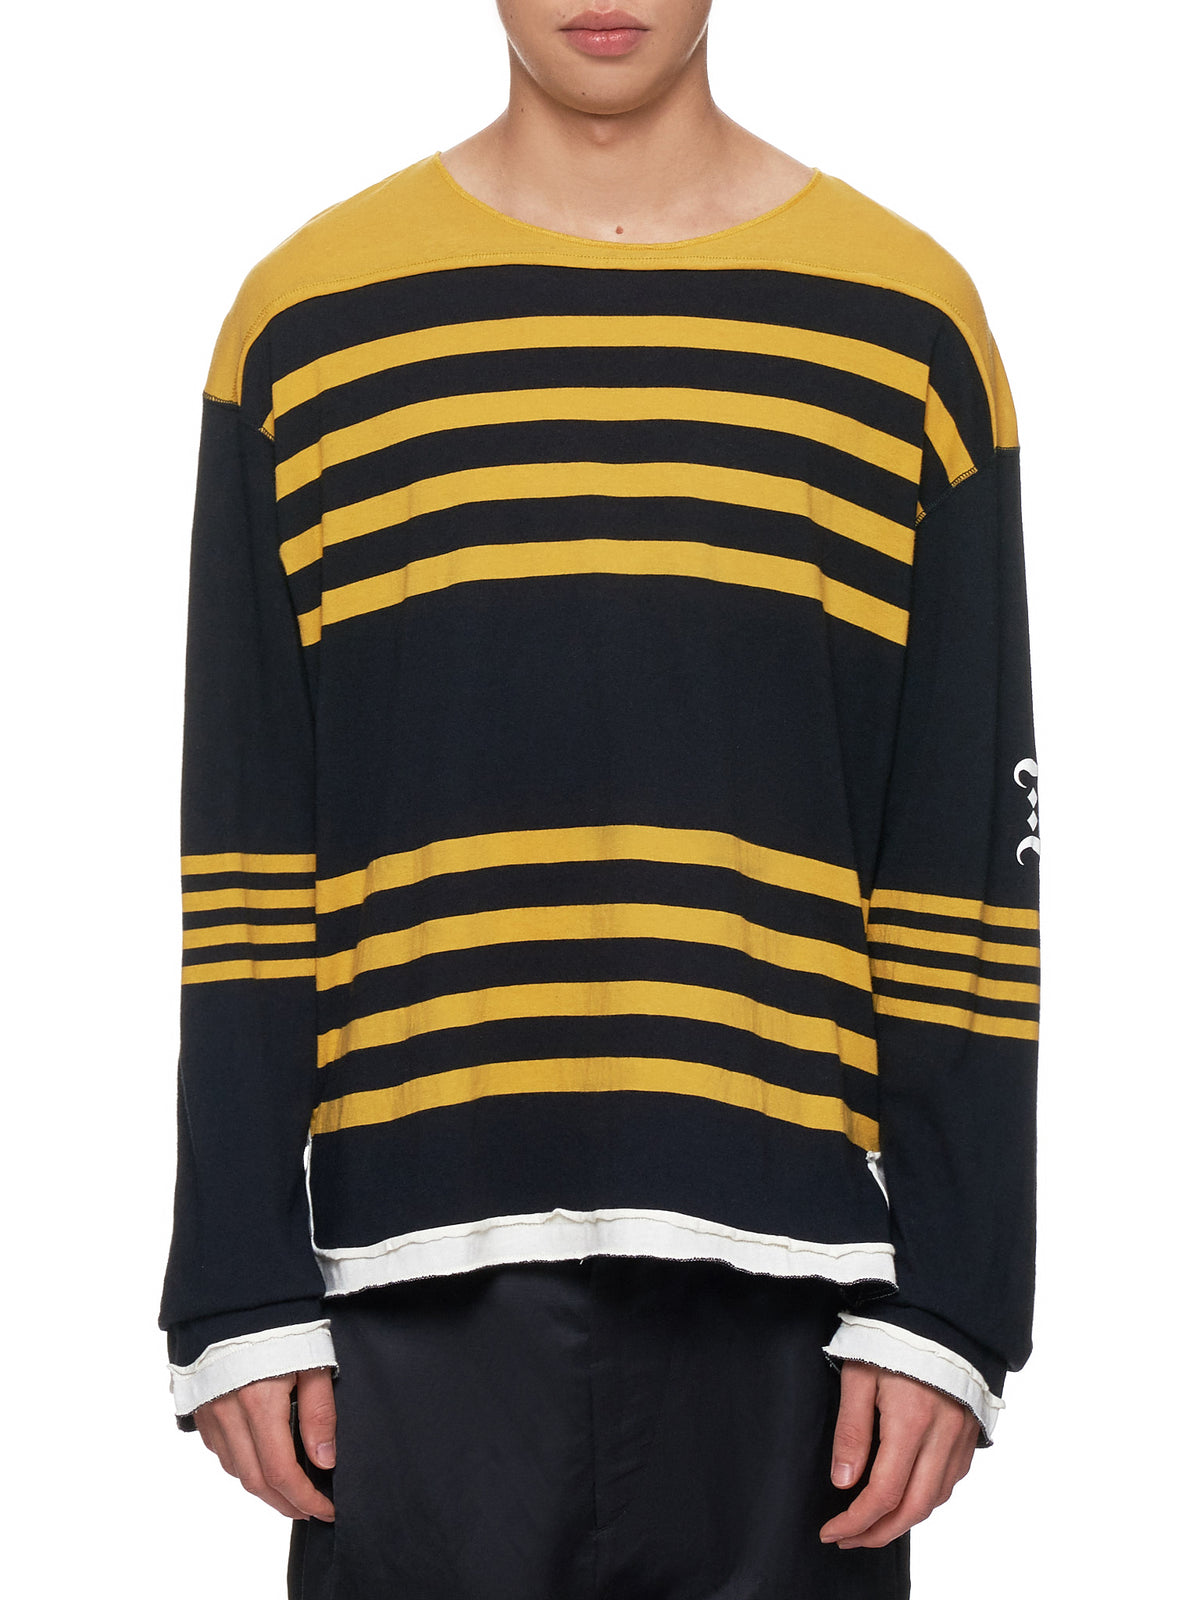 Undercover Stripe Sweater - Hlorenzo Front